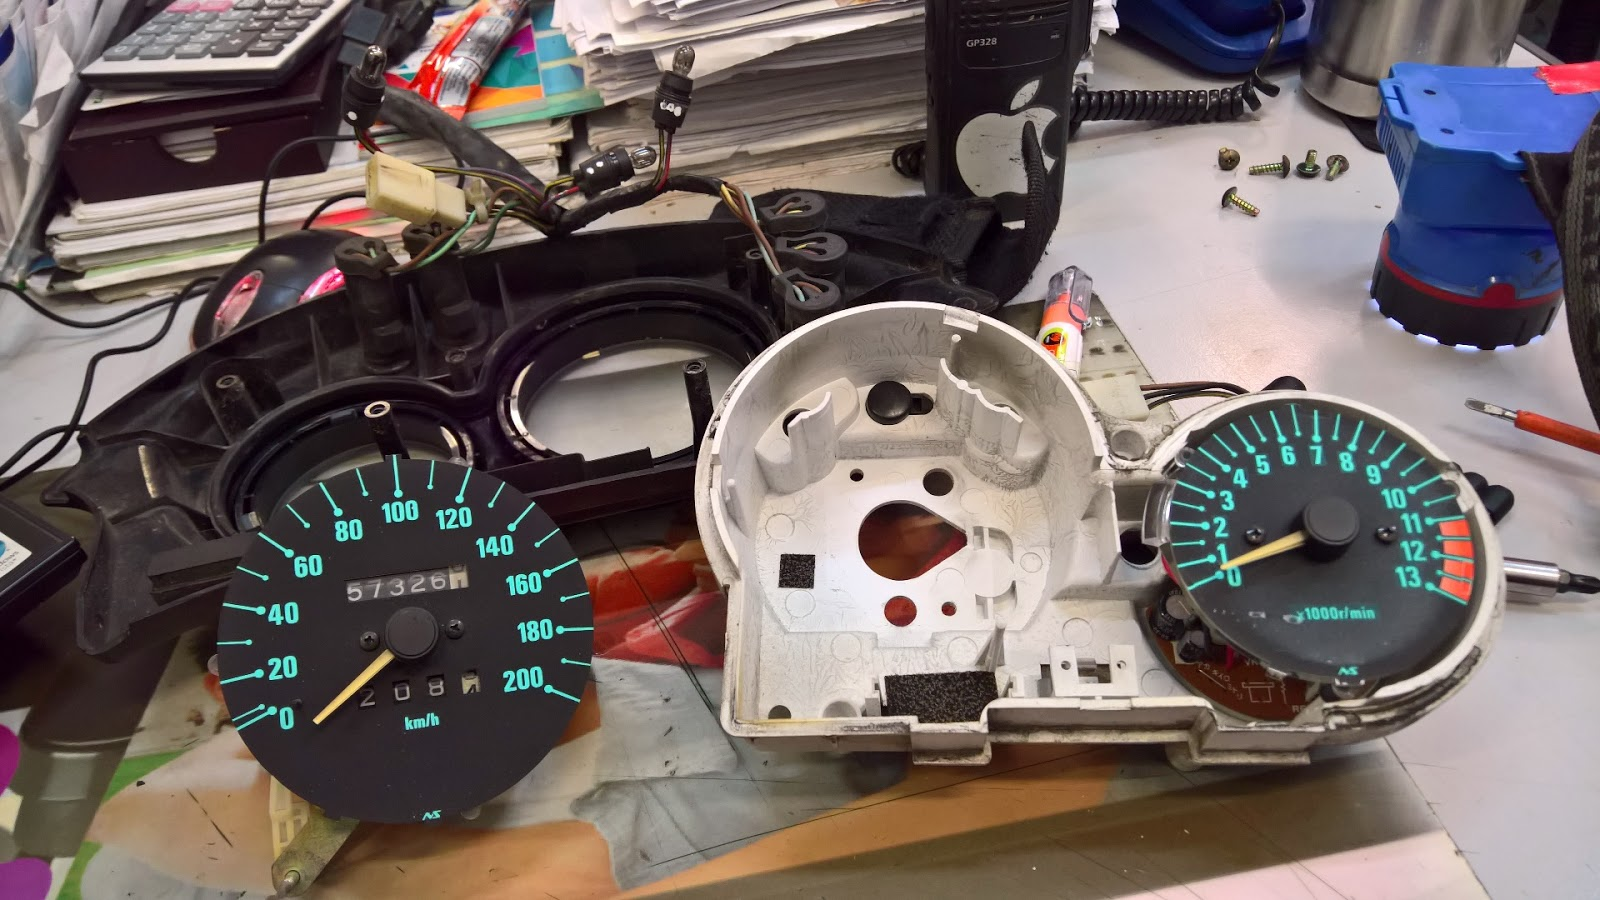 Kle 500 Speedometer Service And Charging Voltage Drop Diy Repair Jeep Speedo Gauge Cluster Wiring Its Not Too Complicated Job To Open Out The Panel At Loosening Head Lamp Cowling We Will Find Mounting Bolt Wire